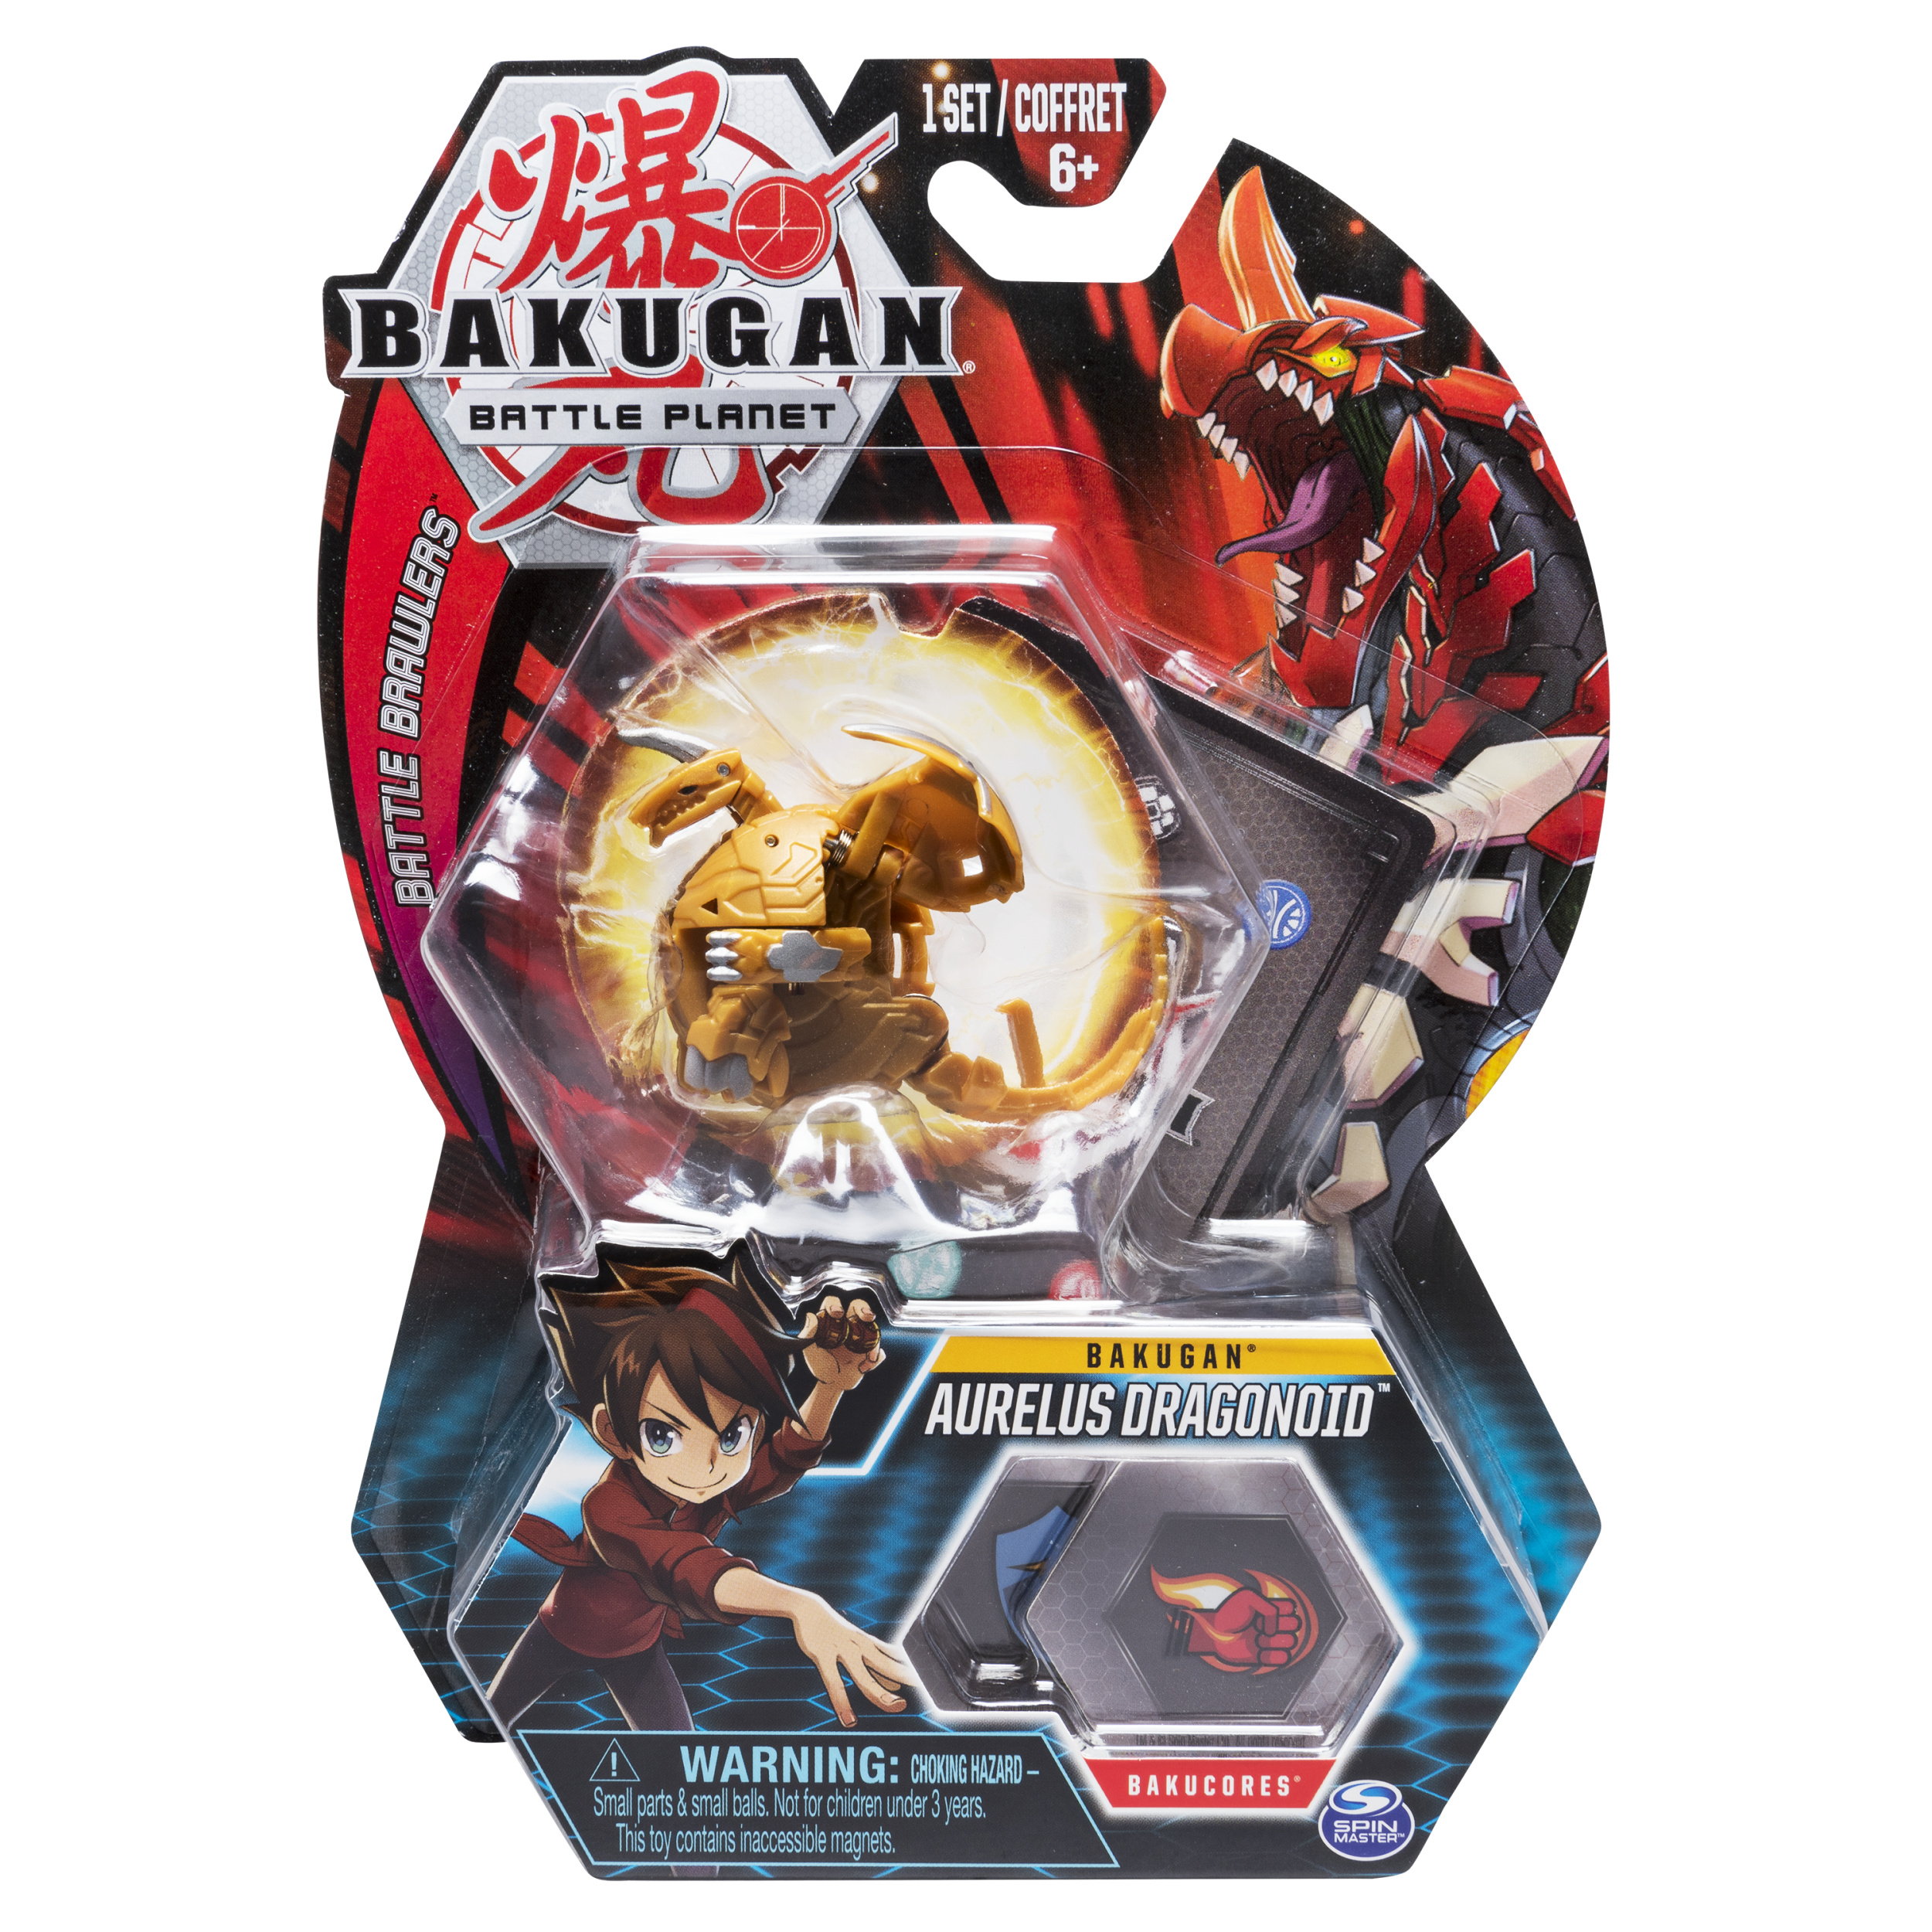 Bakugan, Aurelus Dragonoid, 2-inch Tall Collectible Action Figure and Trading Card, for Ages 6 and Up